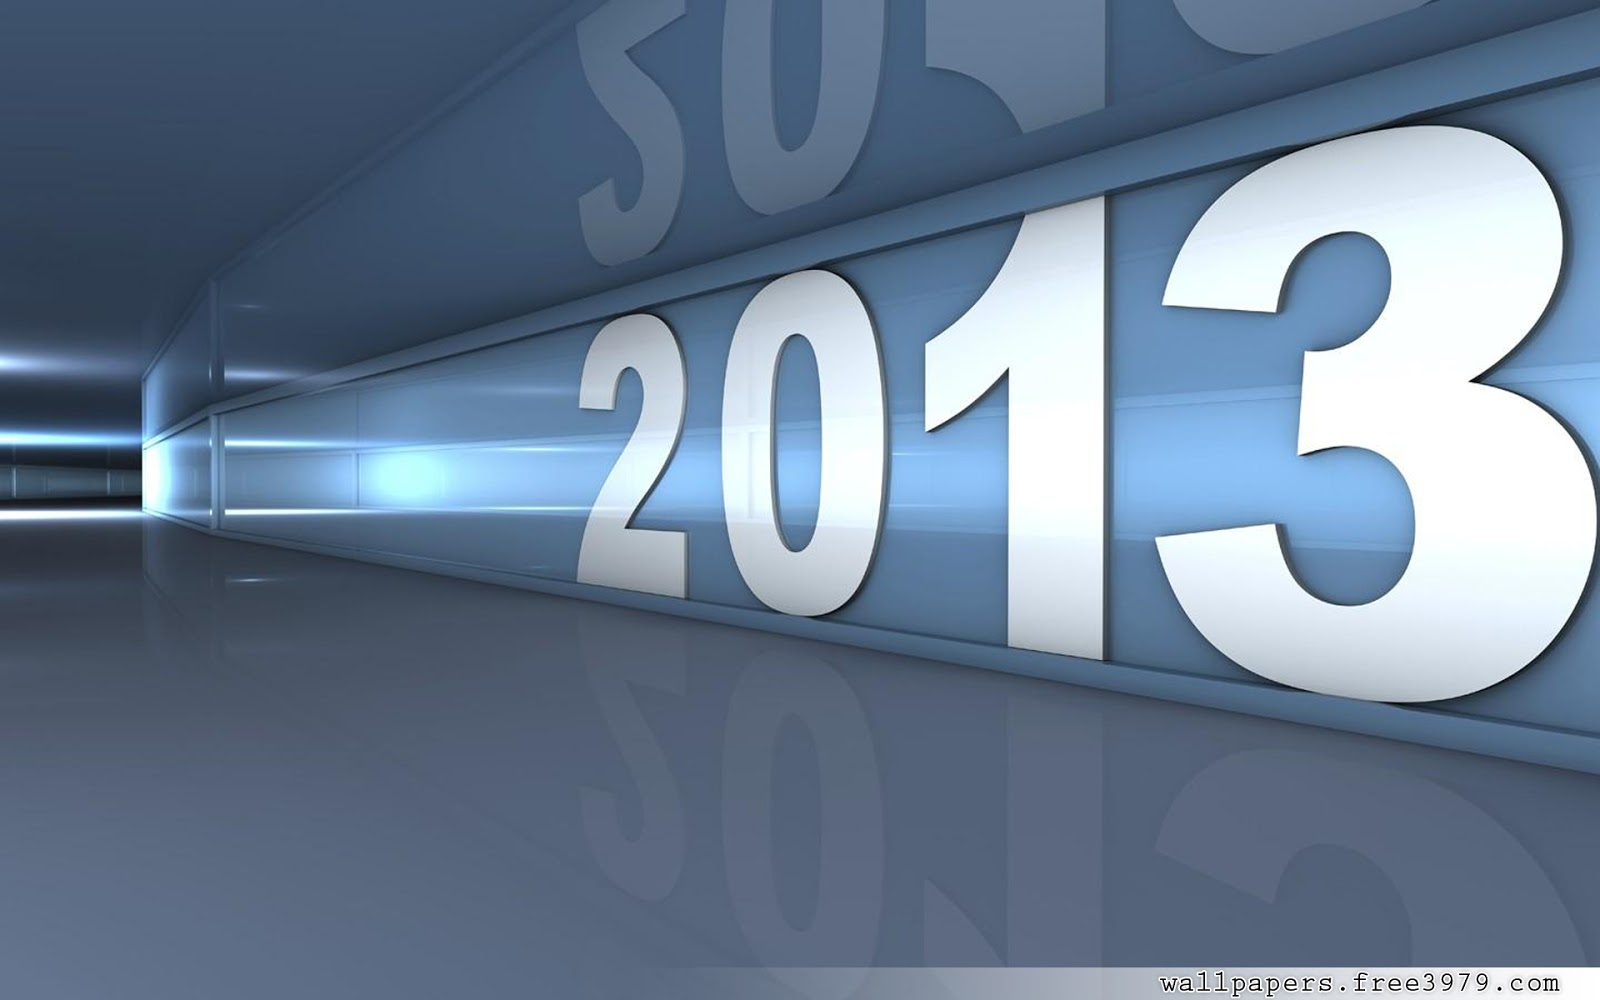 Wallpapers 2013. new year 2013, new year 2013